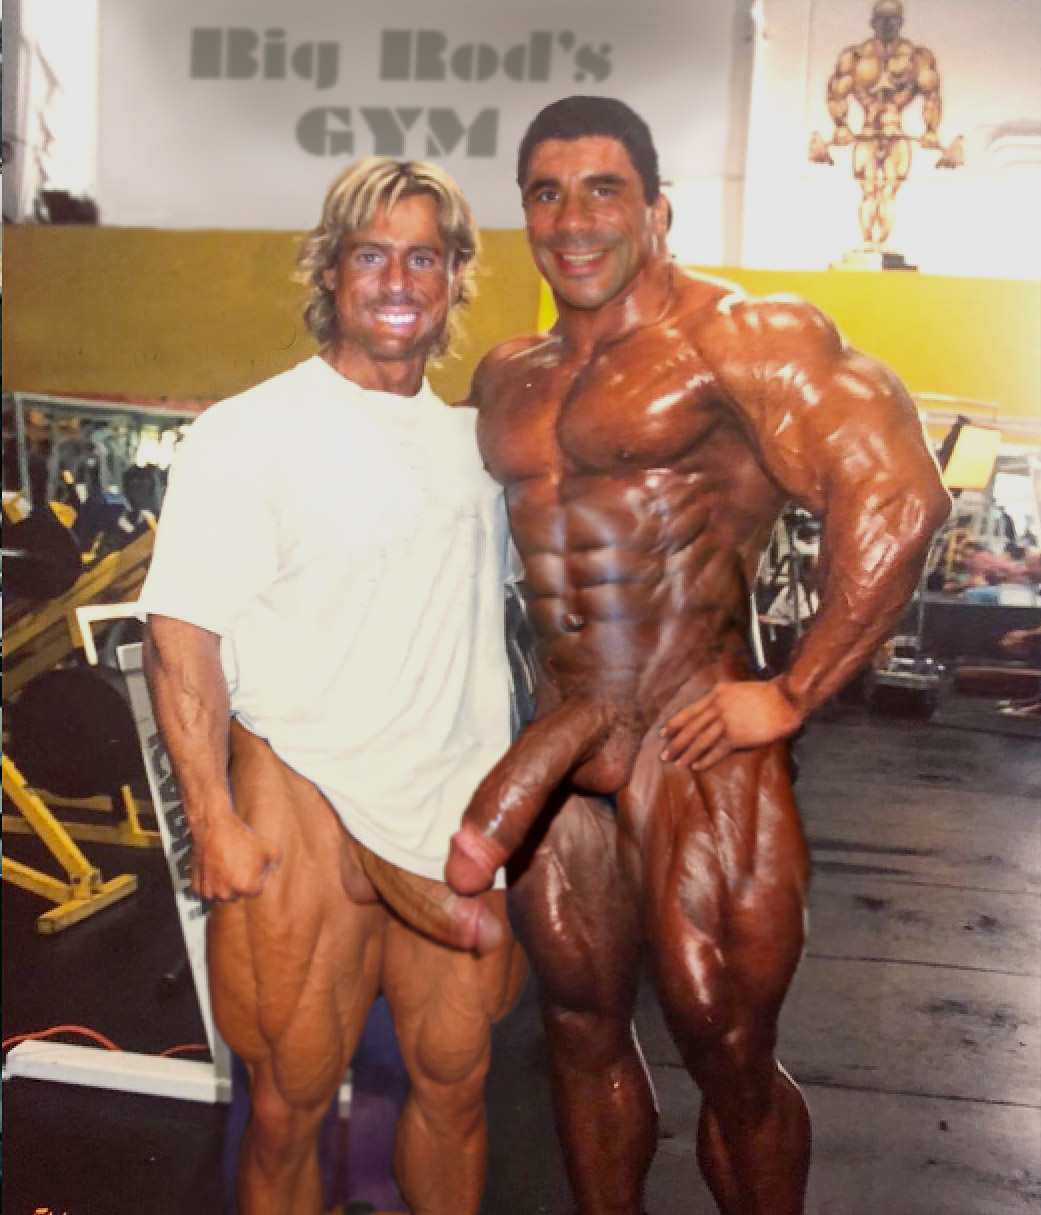 The Ifnb Report Massive Muscle And Cock Blog International Naked Gyms 27